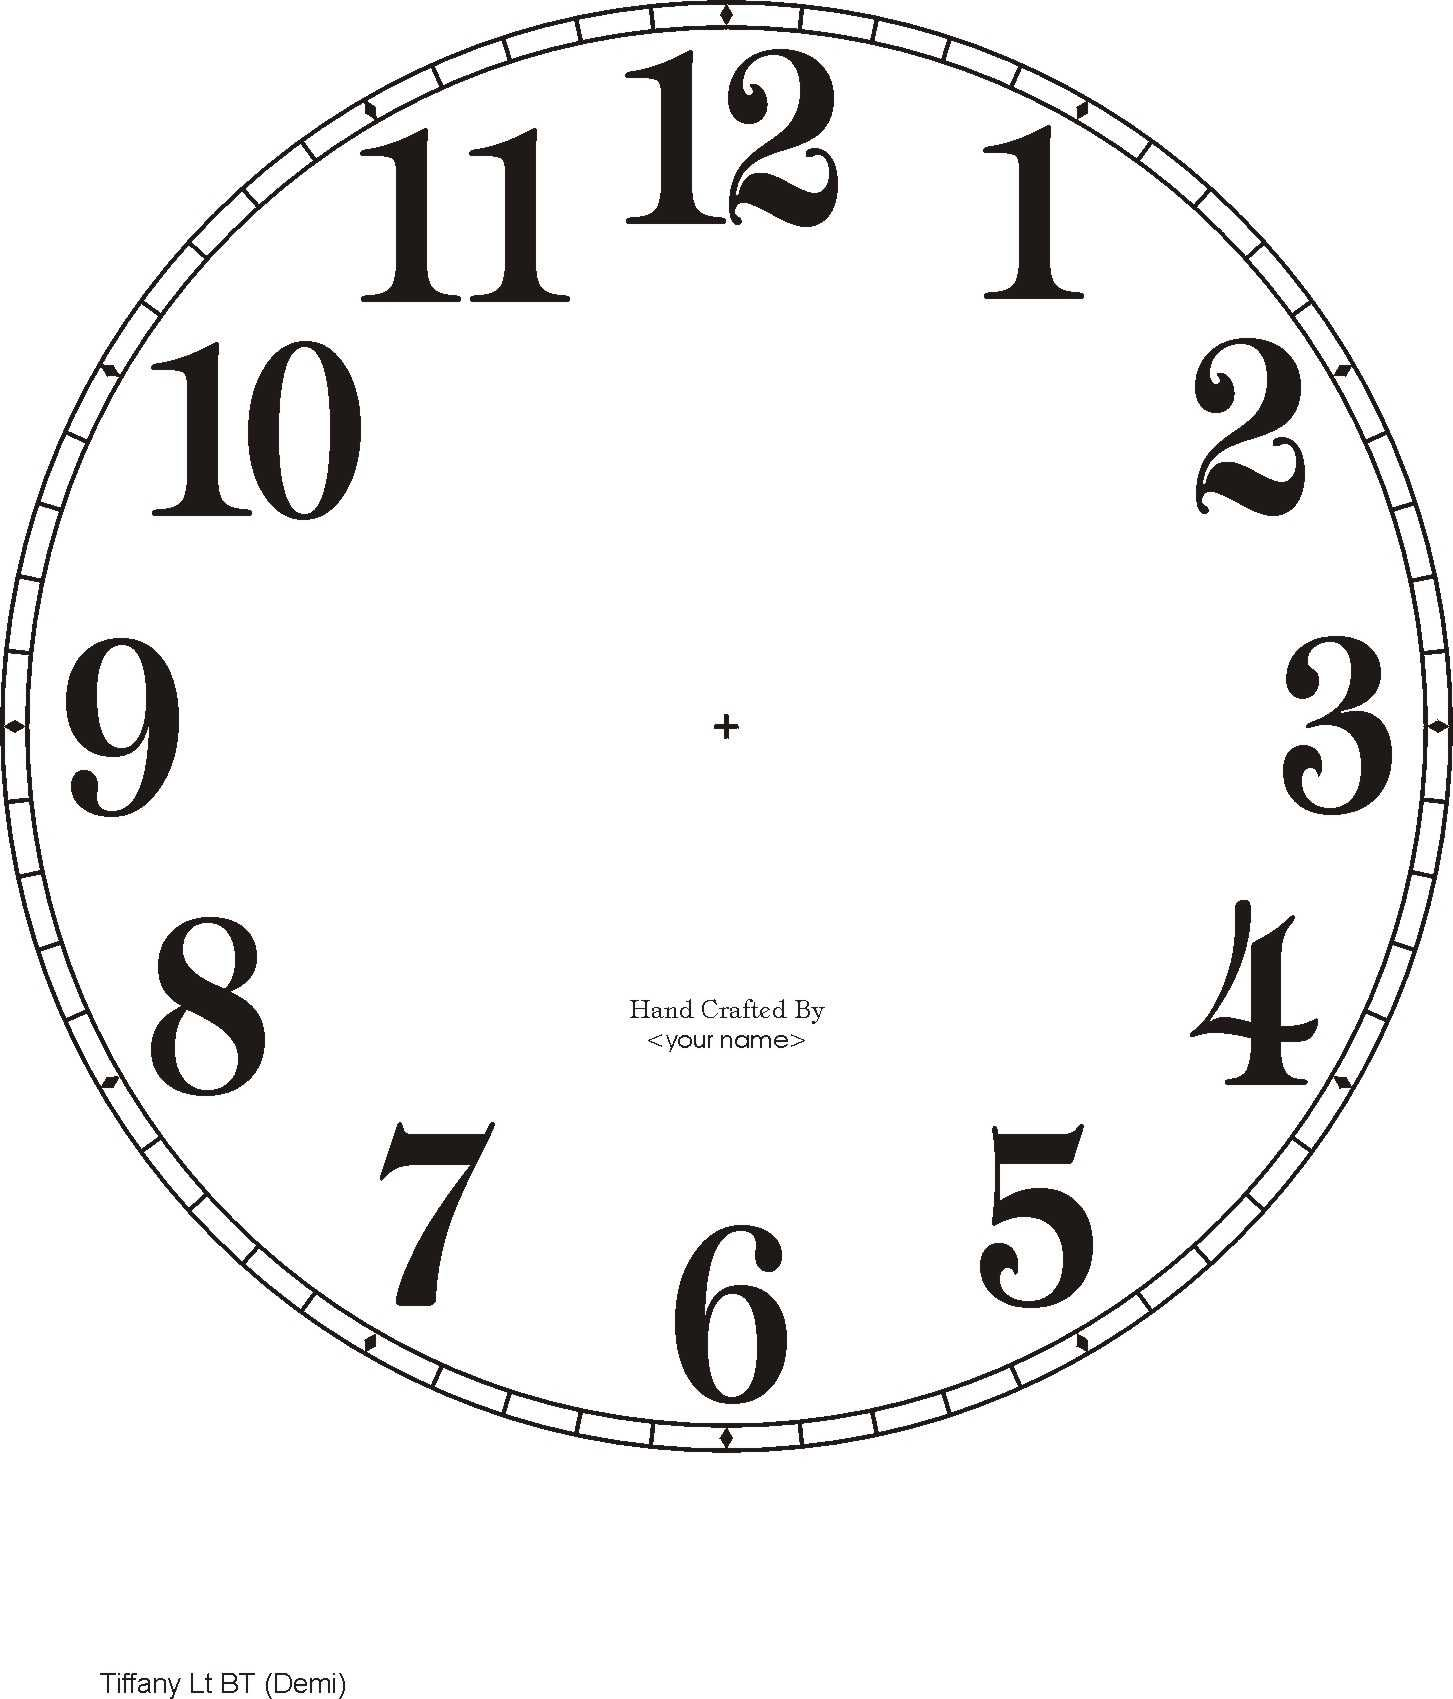 photograph regarding Clock Faces Printable named downloadable clock faces printables Clock confront printable